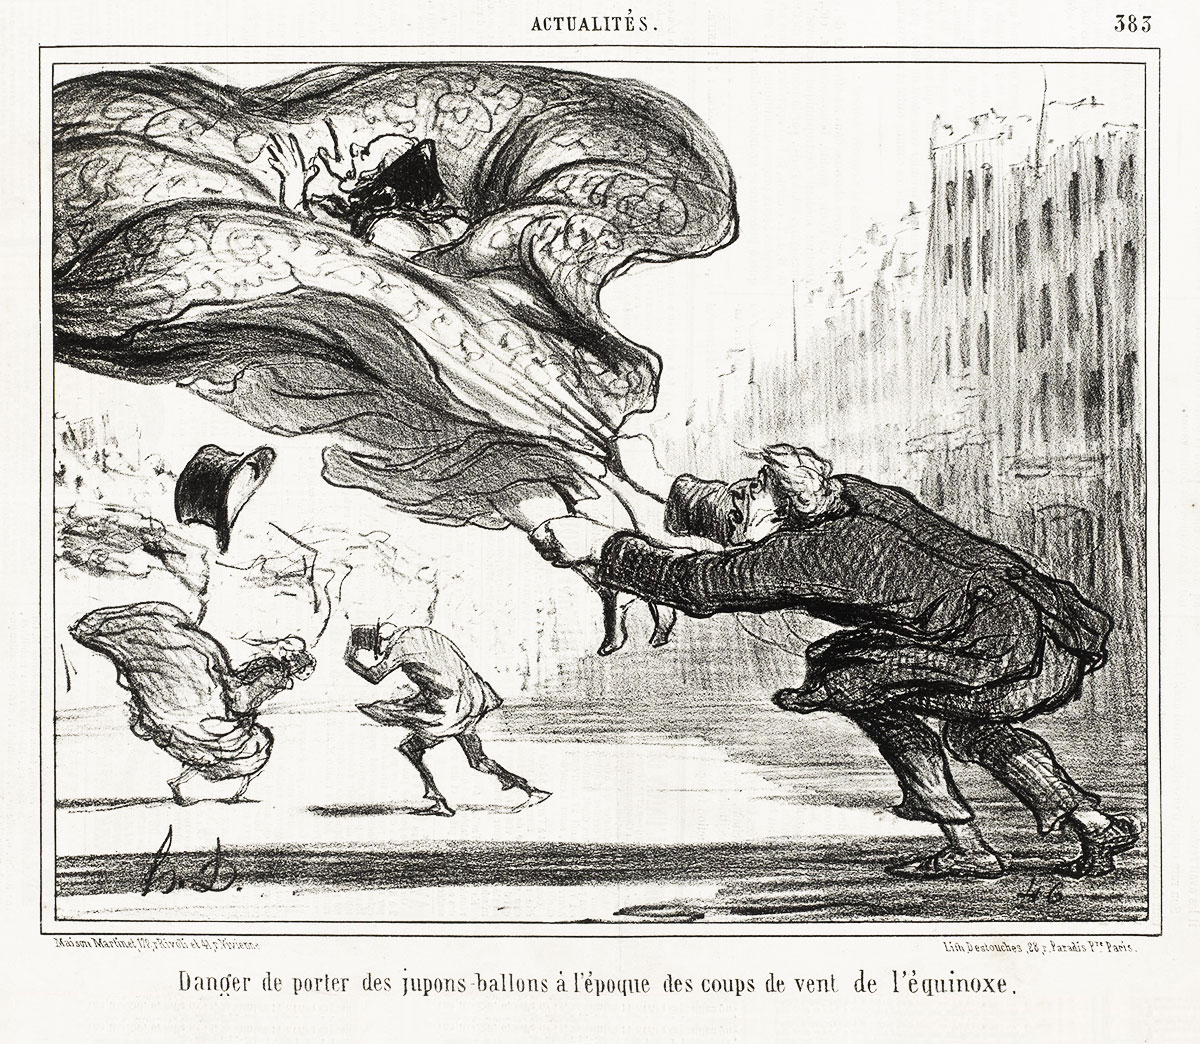 Honoré Daumier, Danger de porter des jupons-ballons à l'époque des coups de vent (The Danger of Wearing Hoop Skirts), 1857.